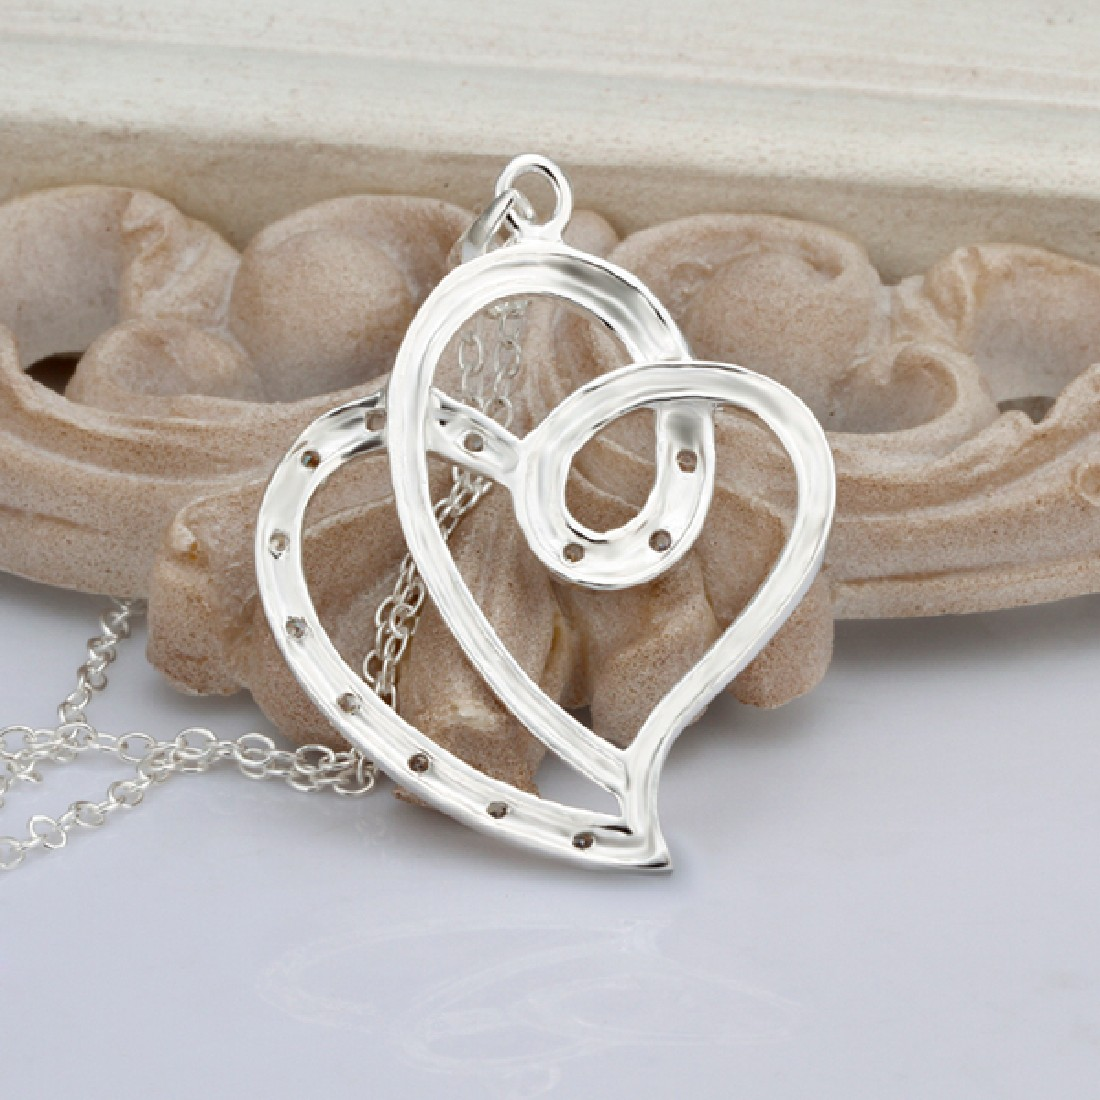 elegant fashion jewelry new silver plated necklace twist double hearts pendant(China (Mainland))